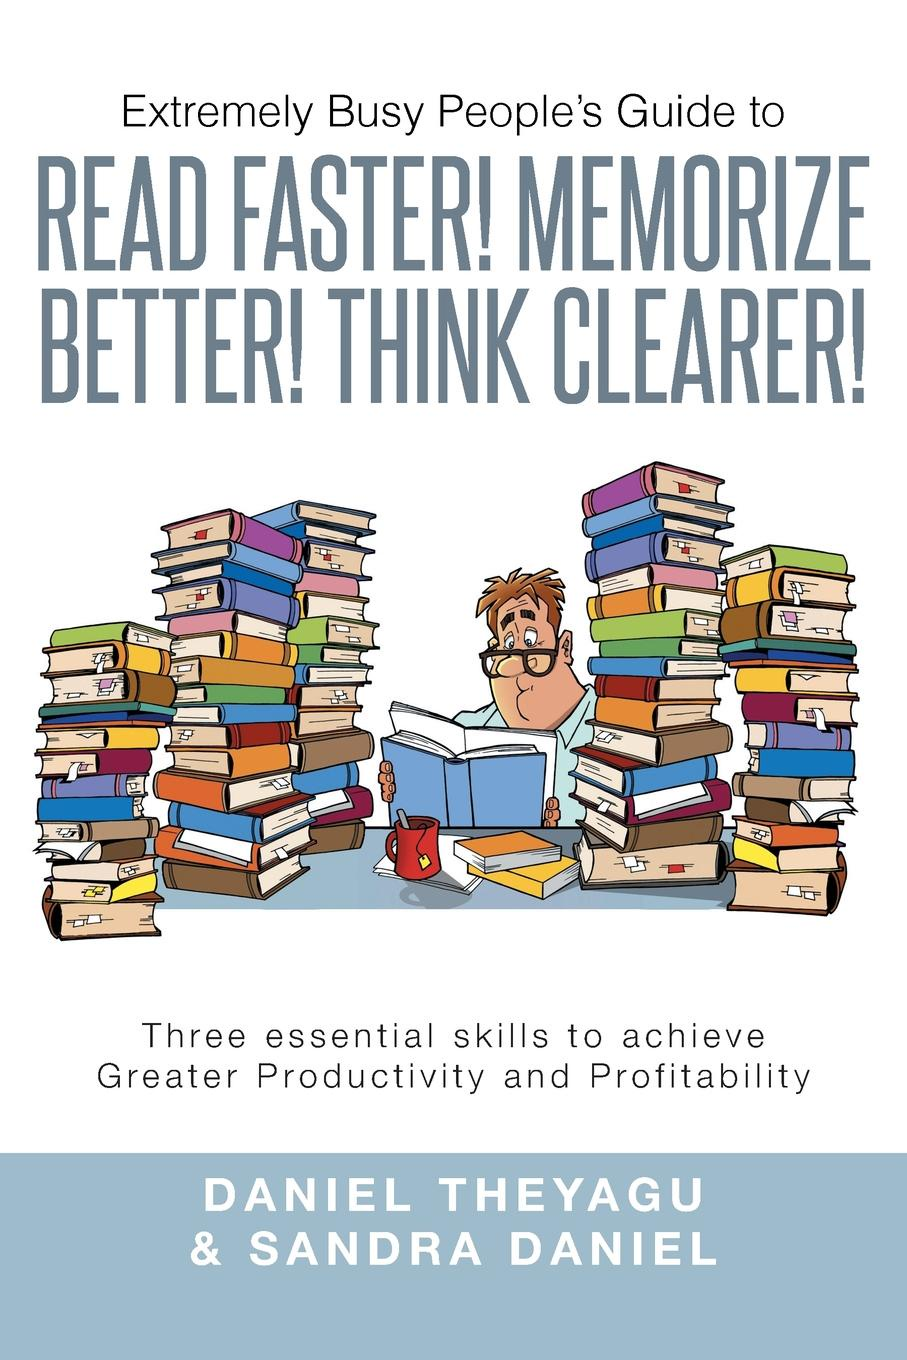 Daniel Theyagu, Sandra Daniel Extremely Busy People's Guide to Read Faster! Memorize Better! Think Clearer!. Three Essential Skills to Achieve Greater Productivity and Profitabilit joe ungemah misplaced talent a guide to better people decisions